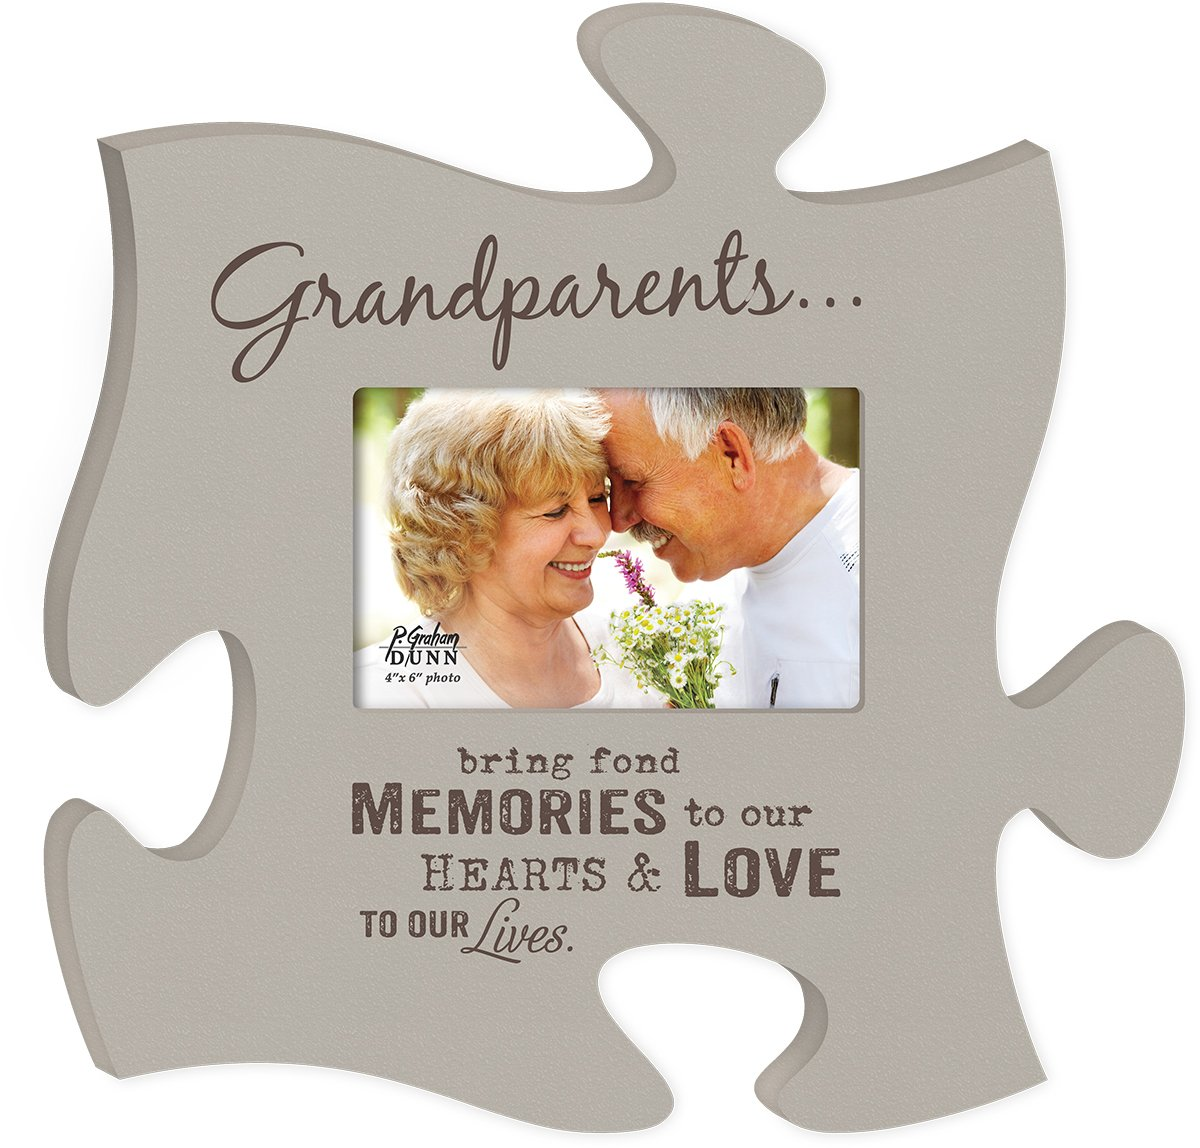 Grandparents Bring Fond Memories Grey 4x6 Photo Frame Inspirational Puzzle Piece Wall Art Plaque